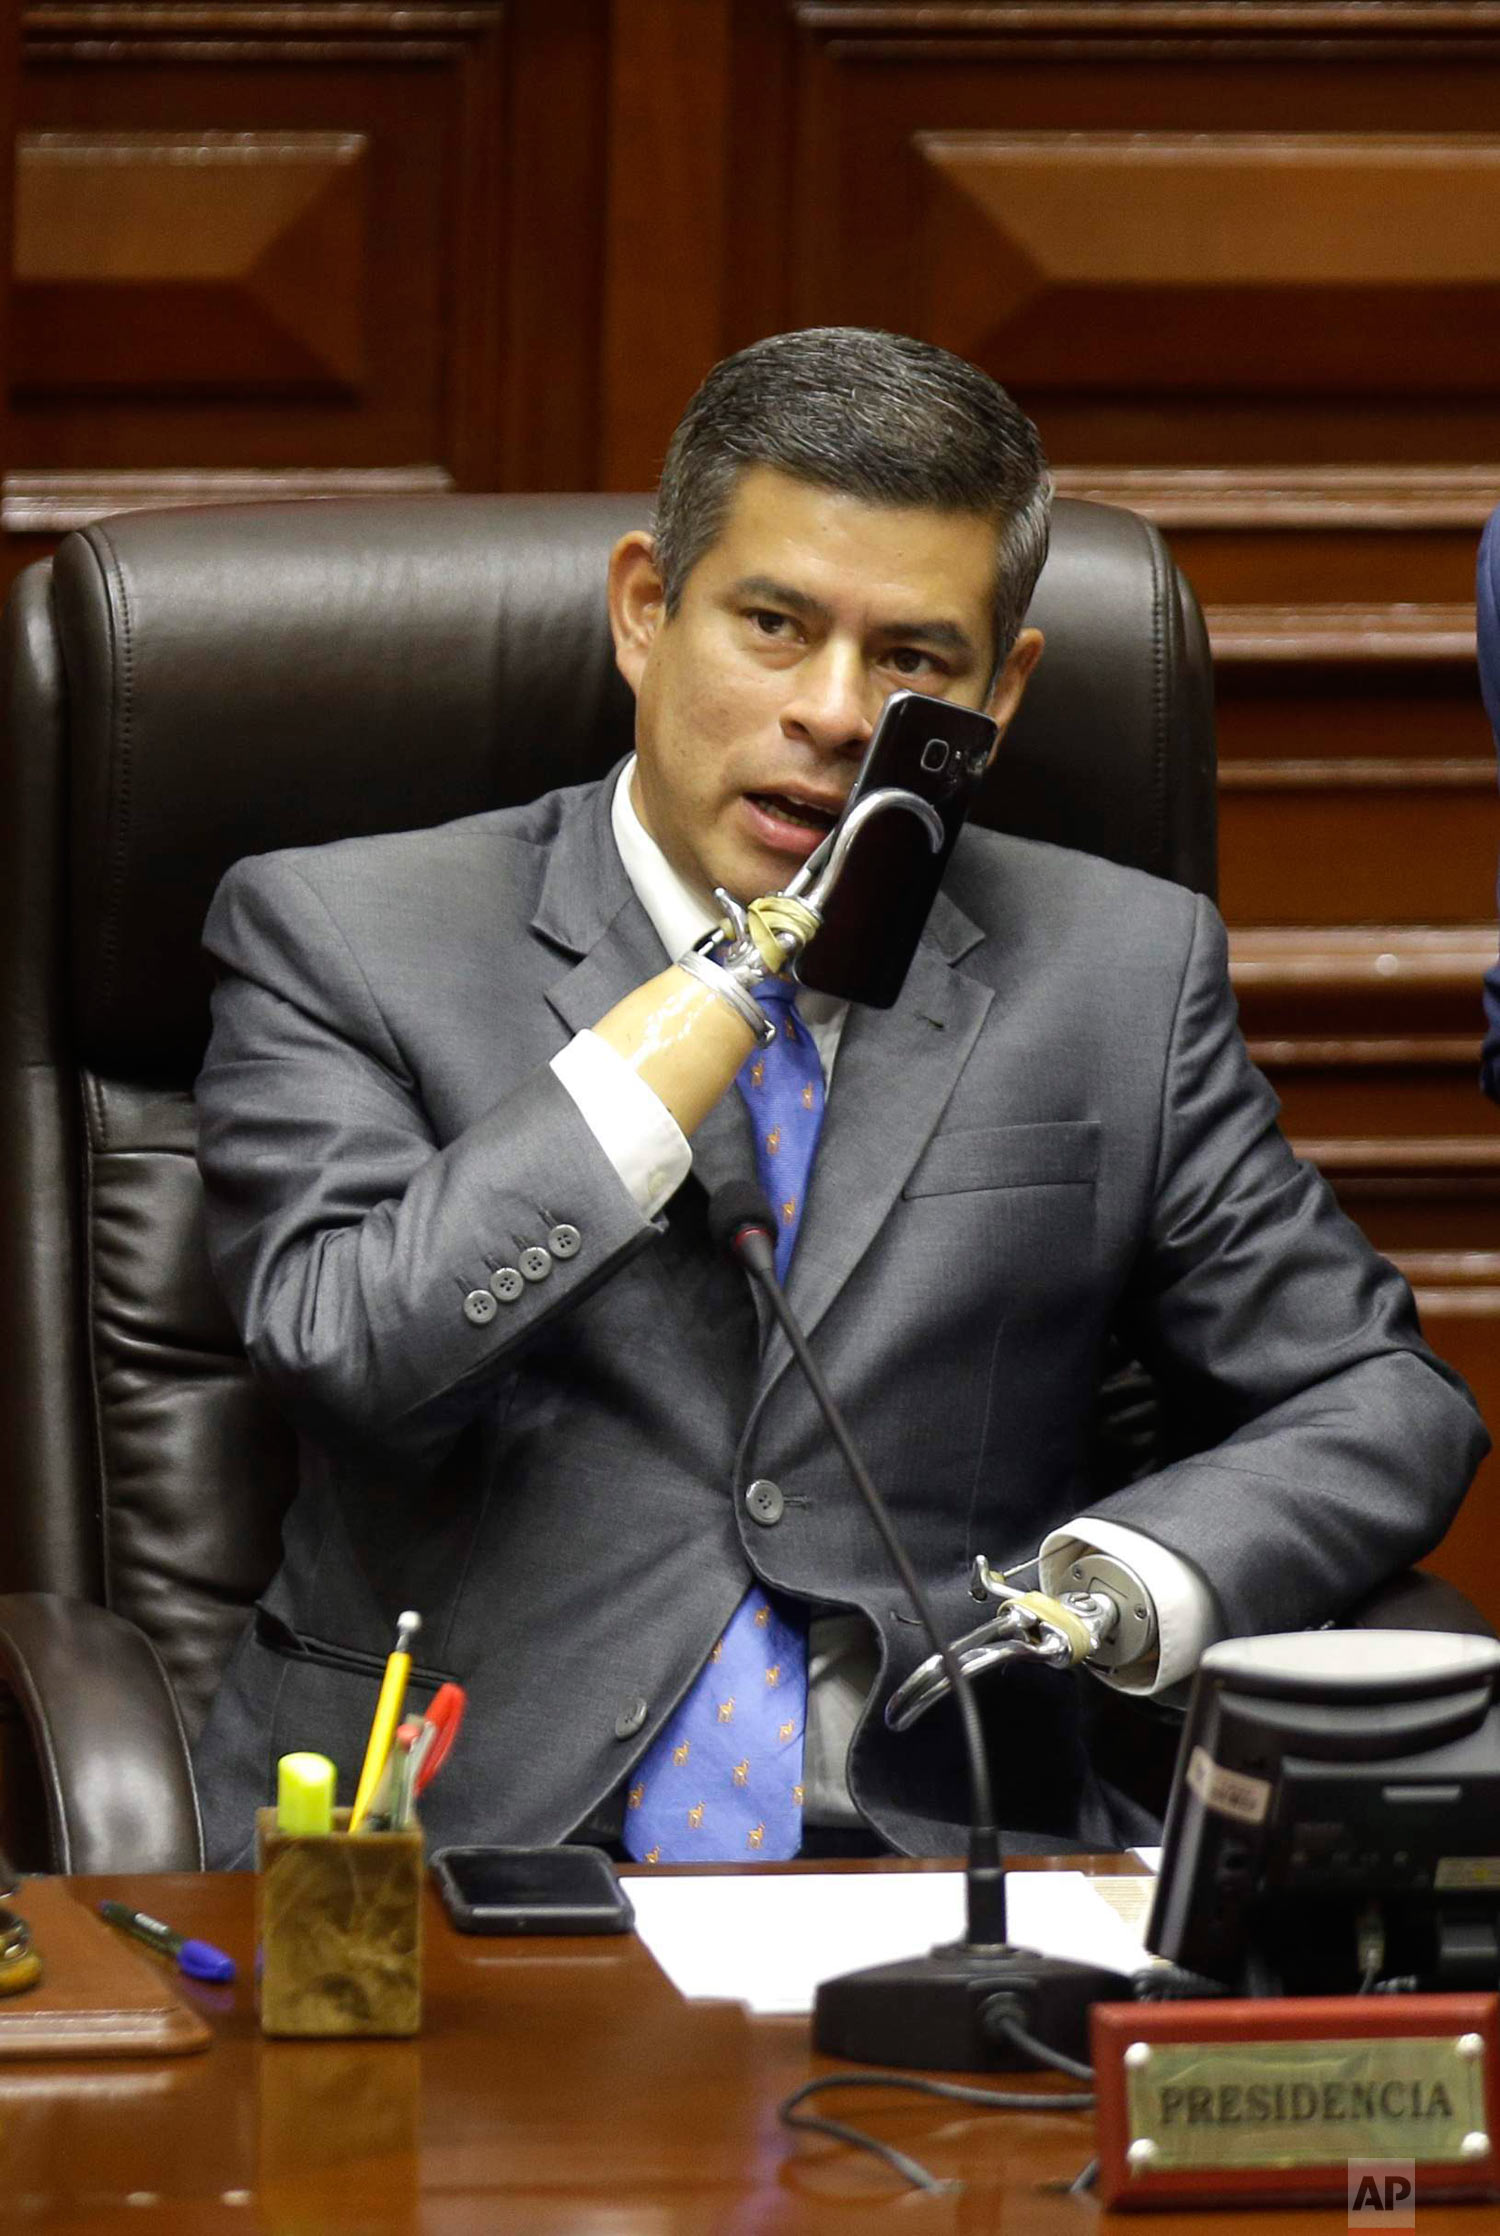 In this March 22, 2018 photo, Congress President Luis Galarreta, who was born without arms, speaks on his cell before the start of a debate on the resignation of Peru's President Pedro Pablo Kuczynski in Lima, Peru. Kuczynski offered his resignation ahead of the impeachment vote, after damaging leaks of confidential documents raised doubts about his integrity and made it impossible to govern. (AP Photo/Martin Mejia)